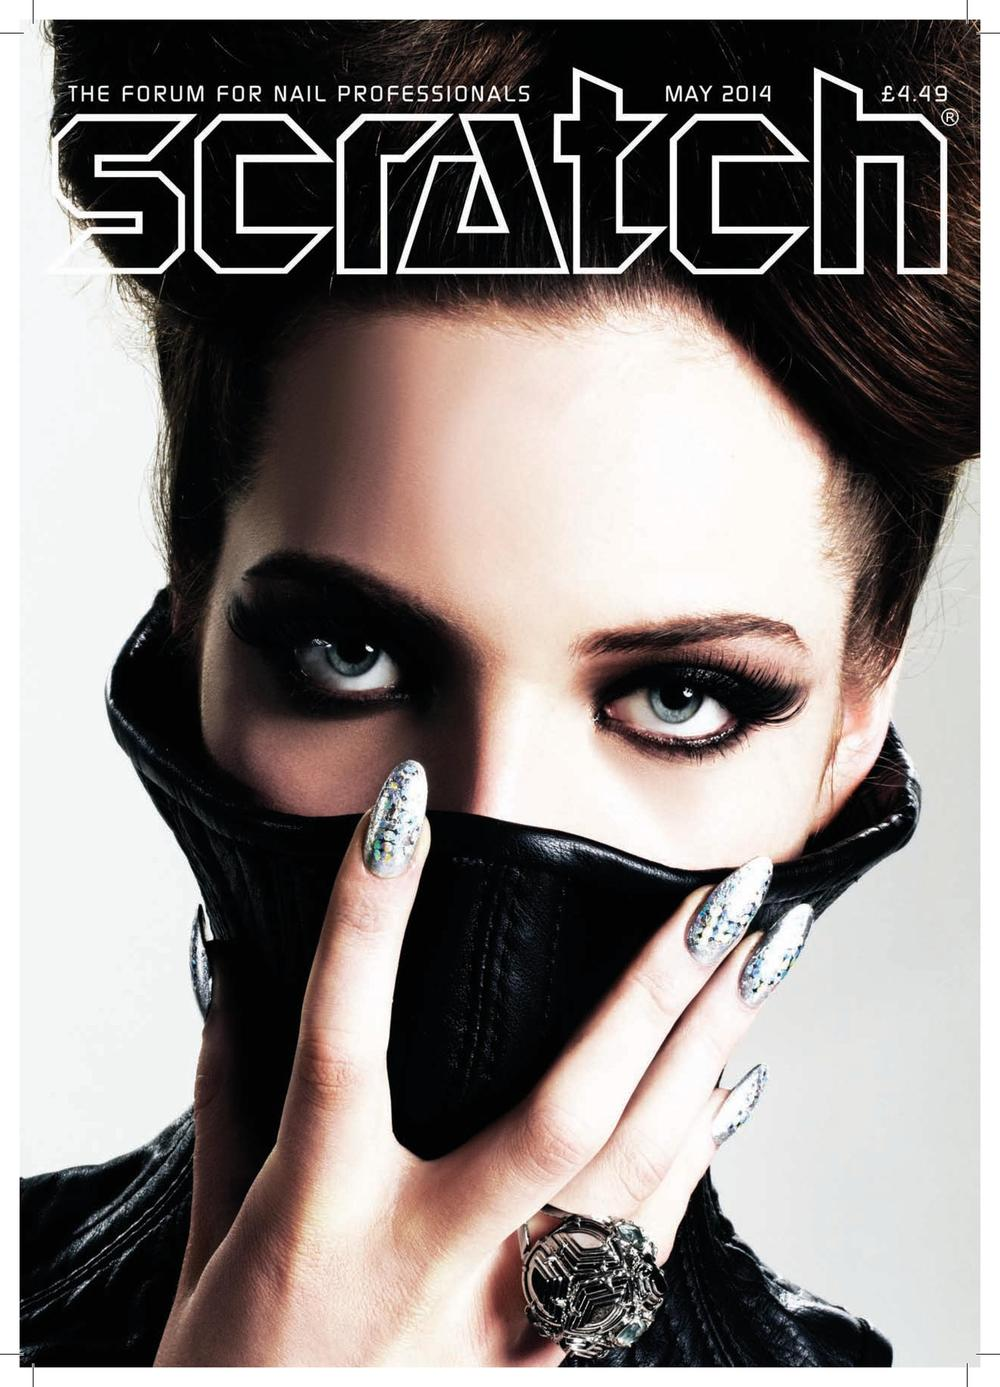 MAY 2014 SCRATCH Cover 1-page-001.jpg